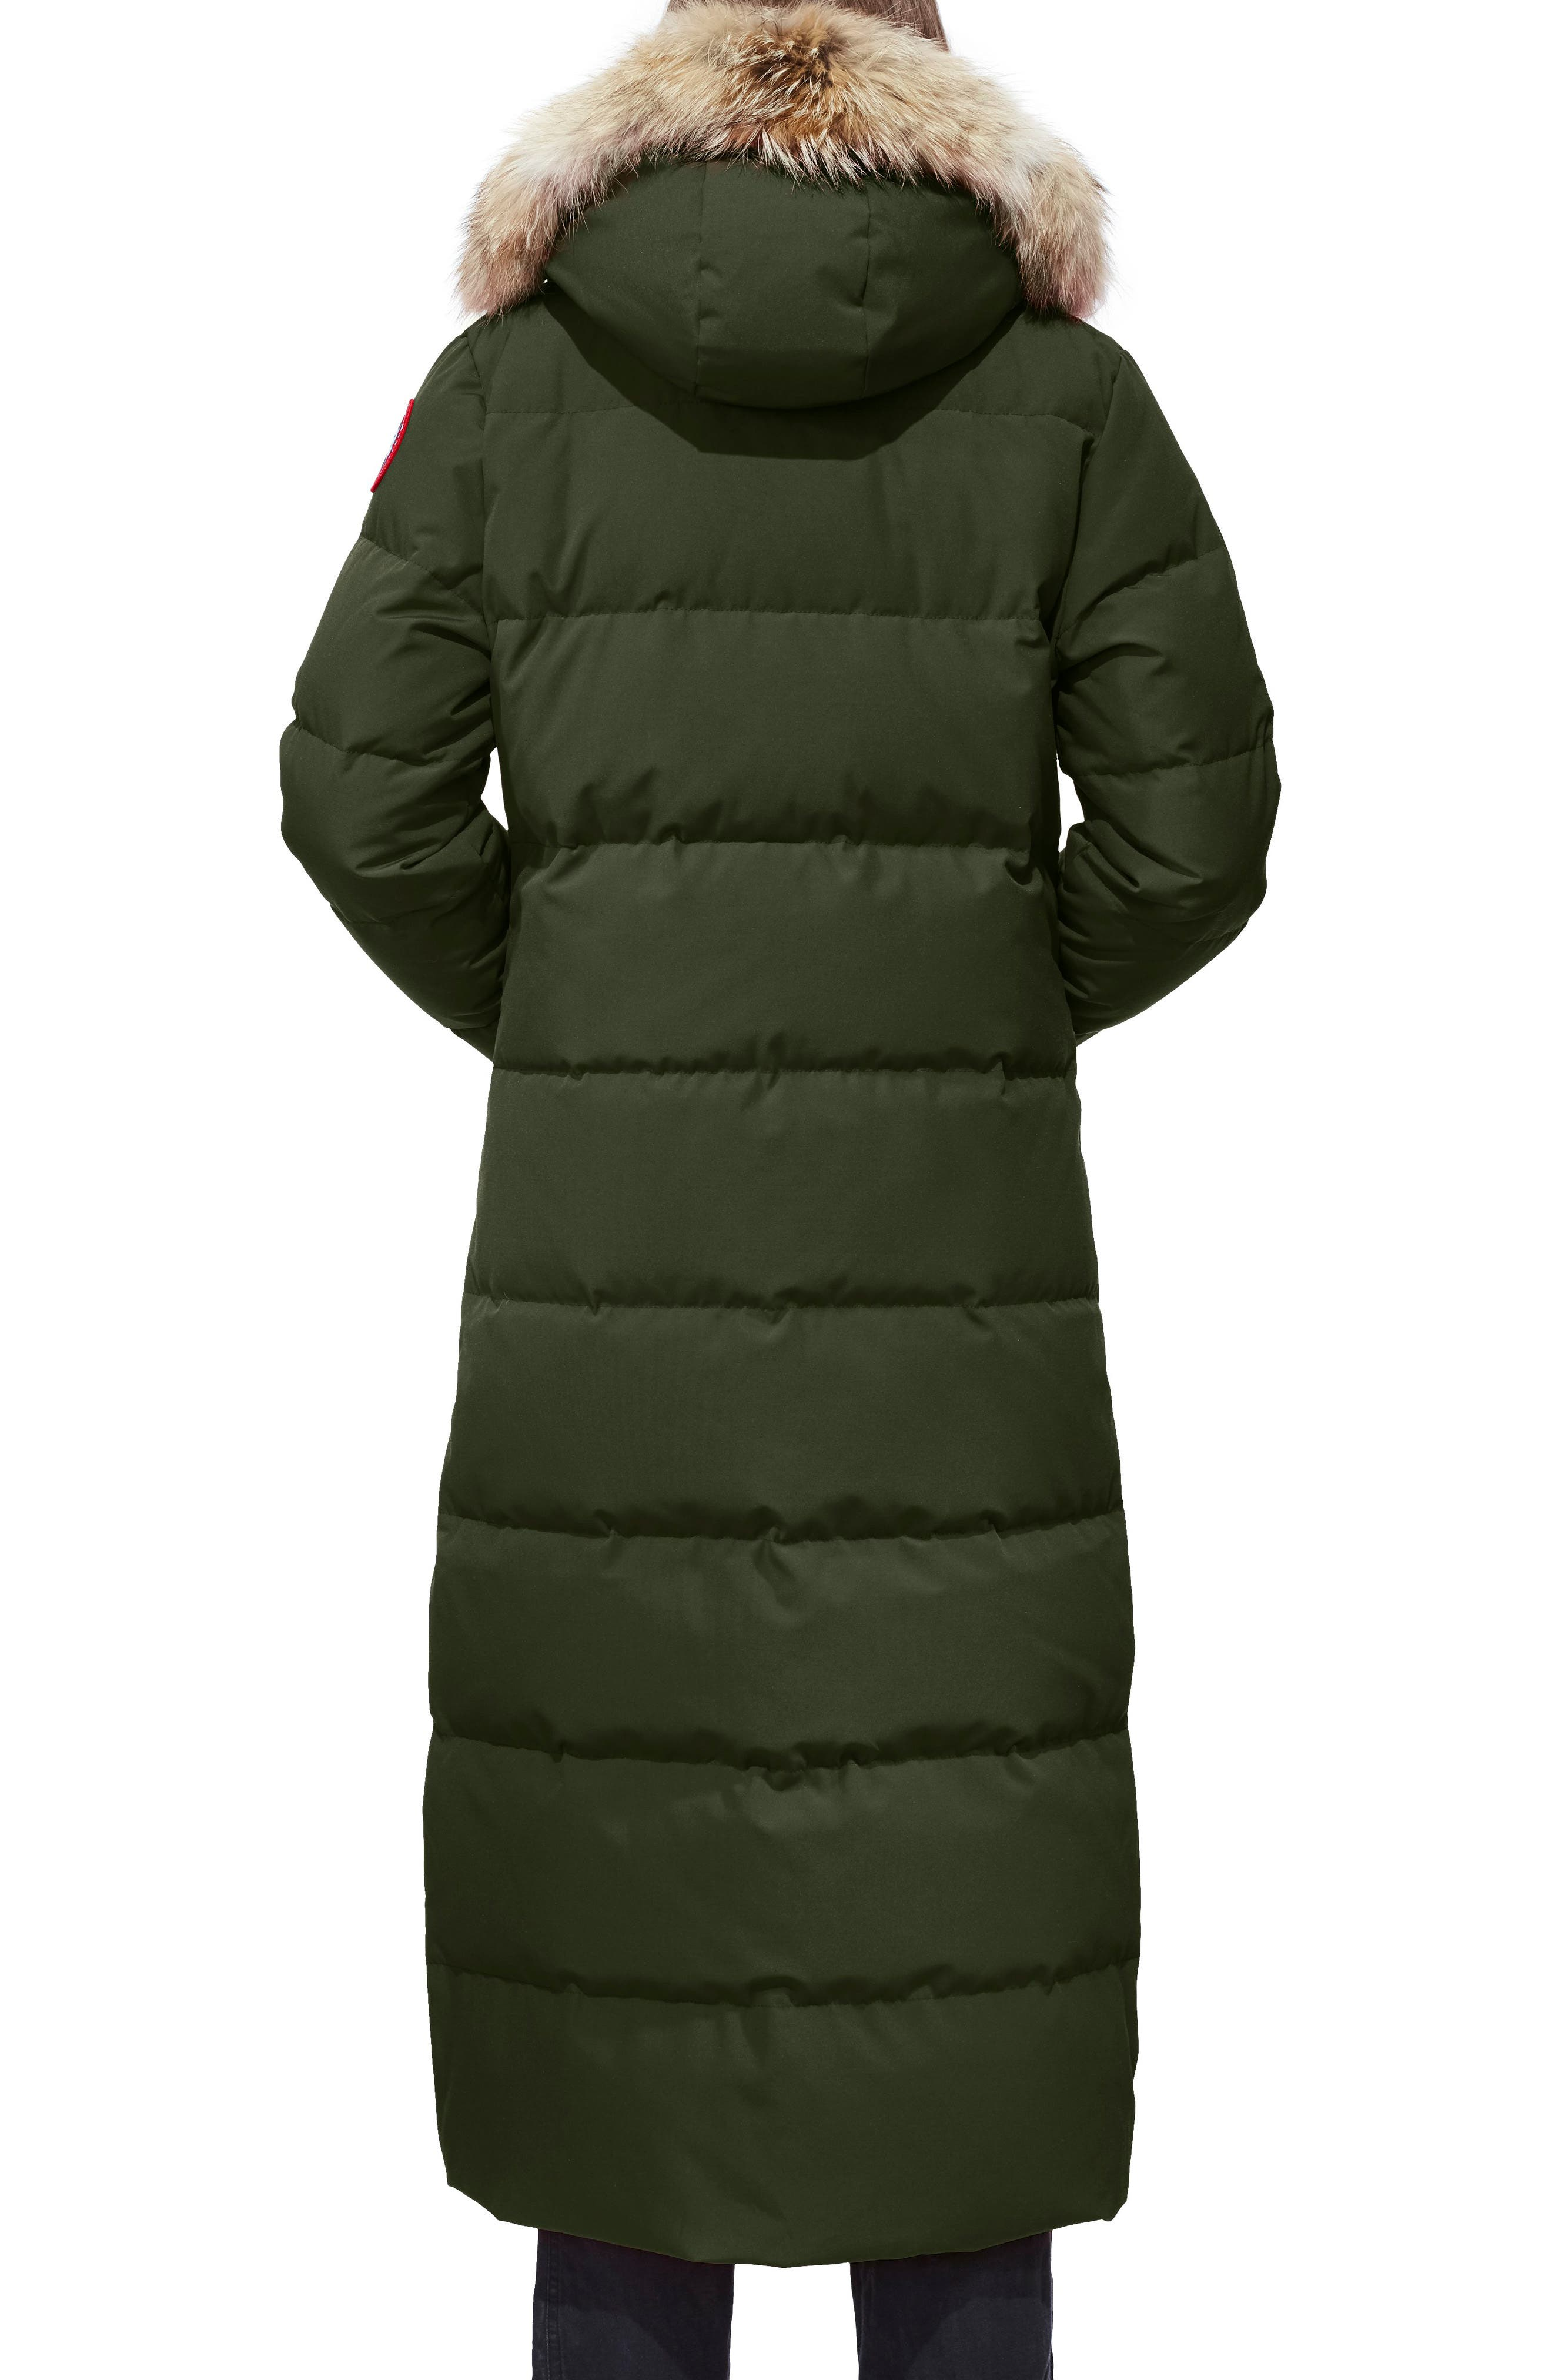 Mystique Regular Fit Down Parka with Genuine Coyote Fur Trim,                             Alternate thumbnail 2, color,                             MILITARY GREEN